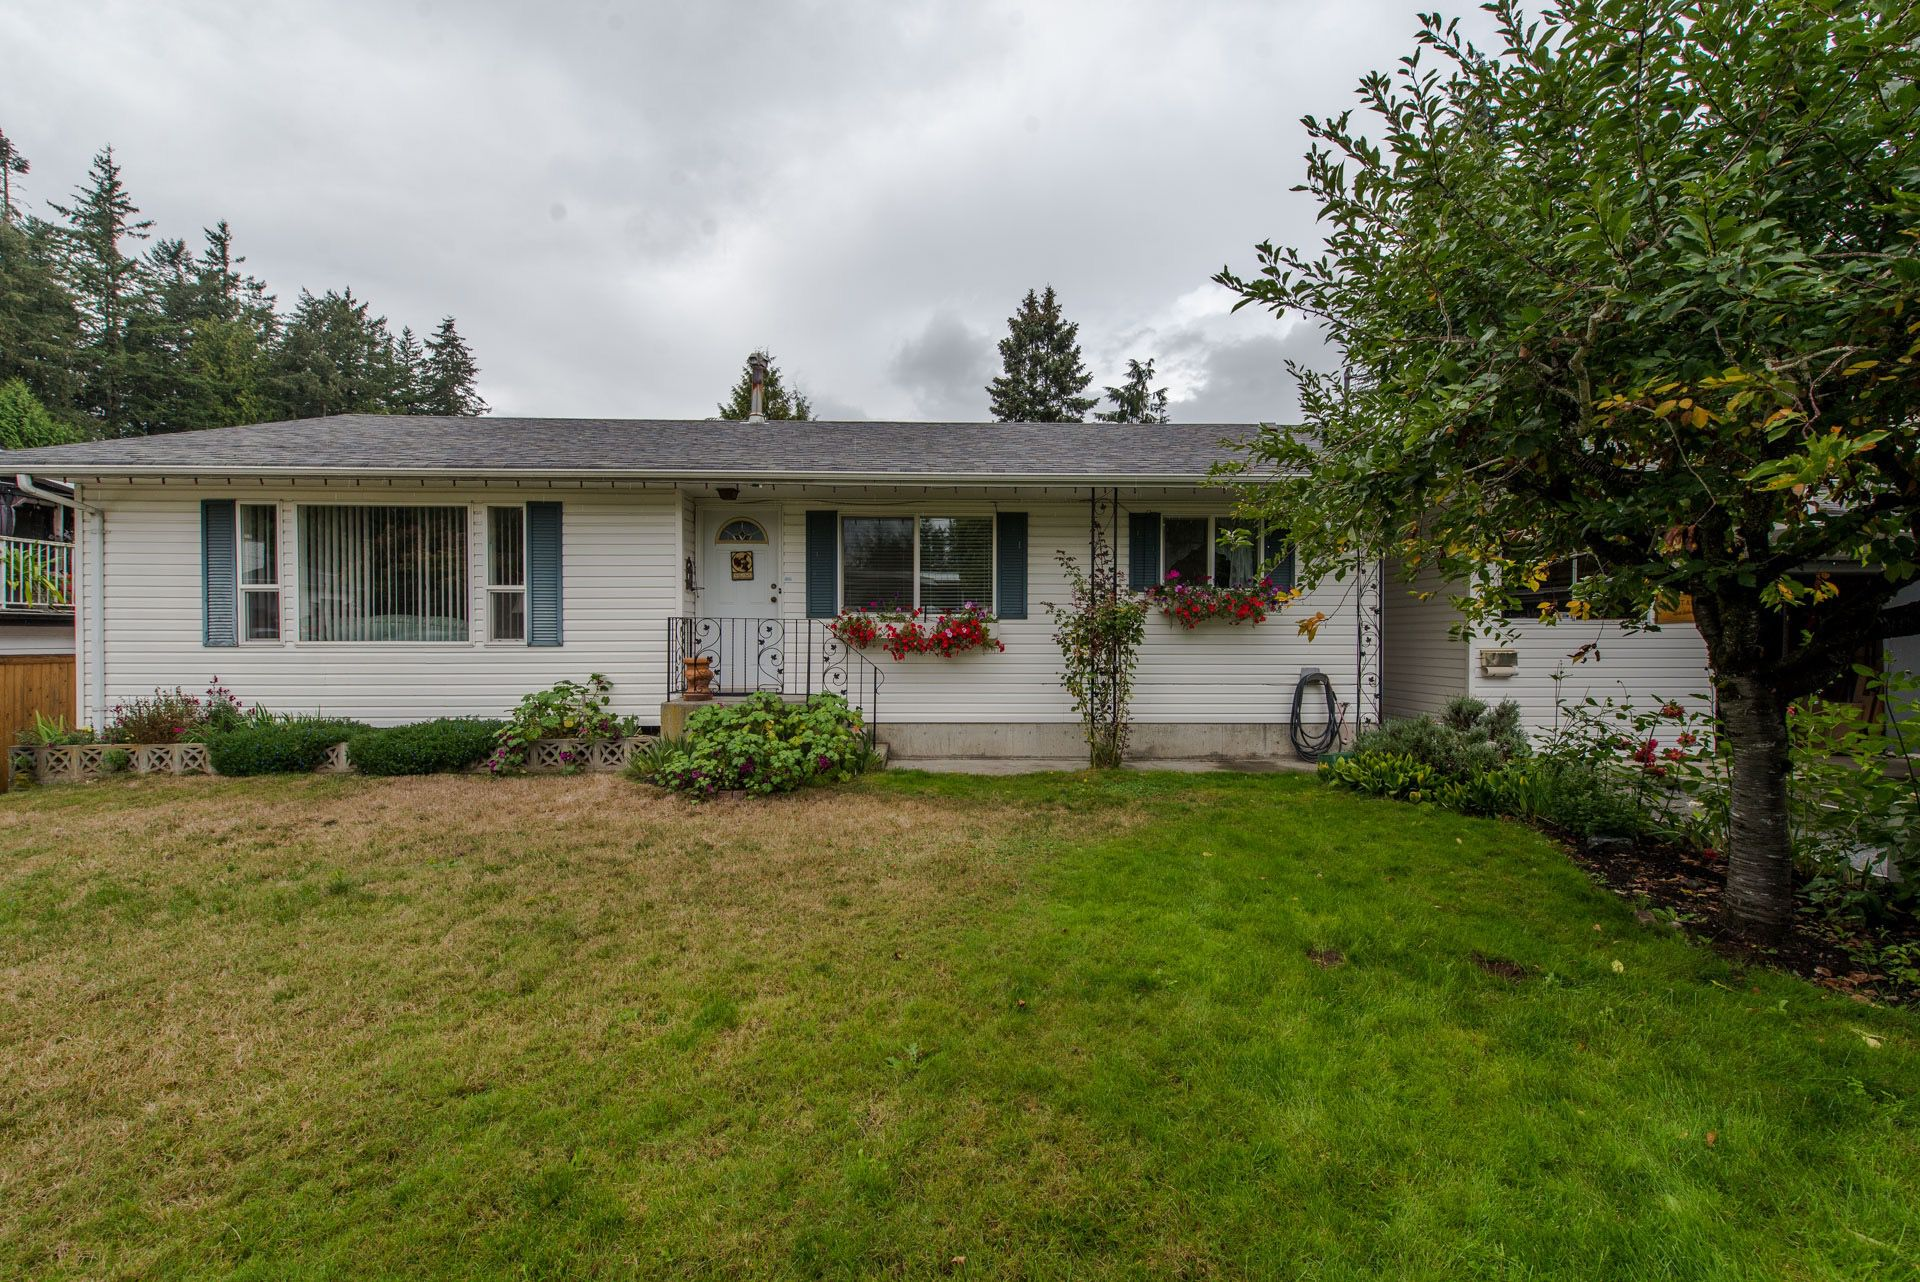 """Main Photo: 33329 RAINBOW Avenue in Abbotsford: Central Abbotsford House for sale in """"Hoon Park"""" : MLS®# R2303752"""